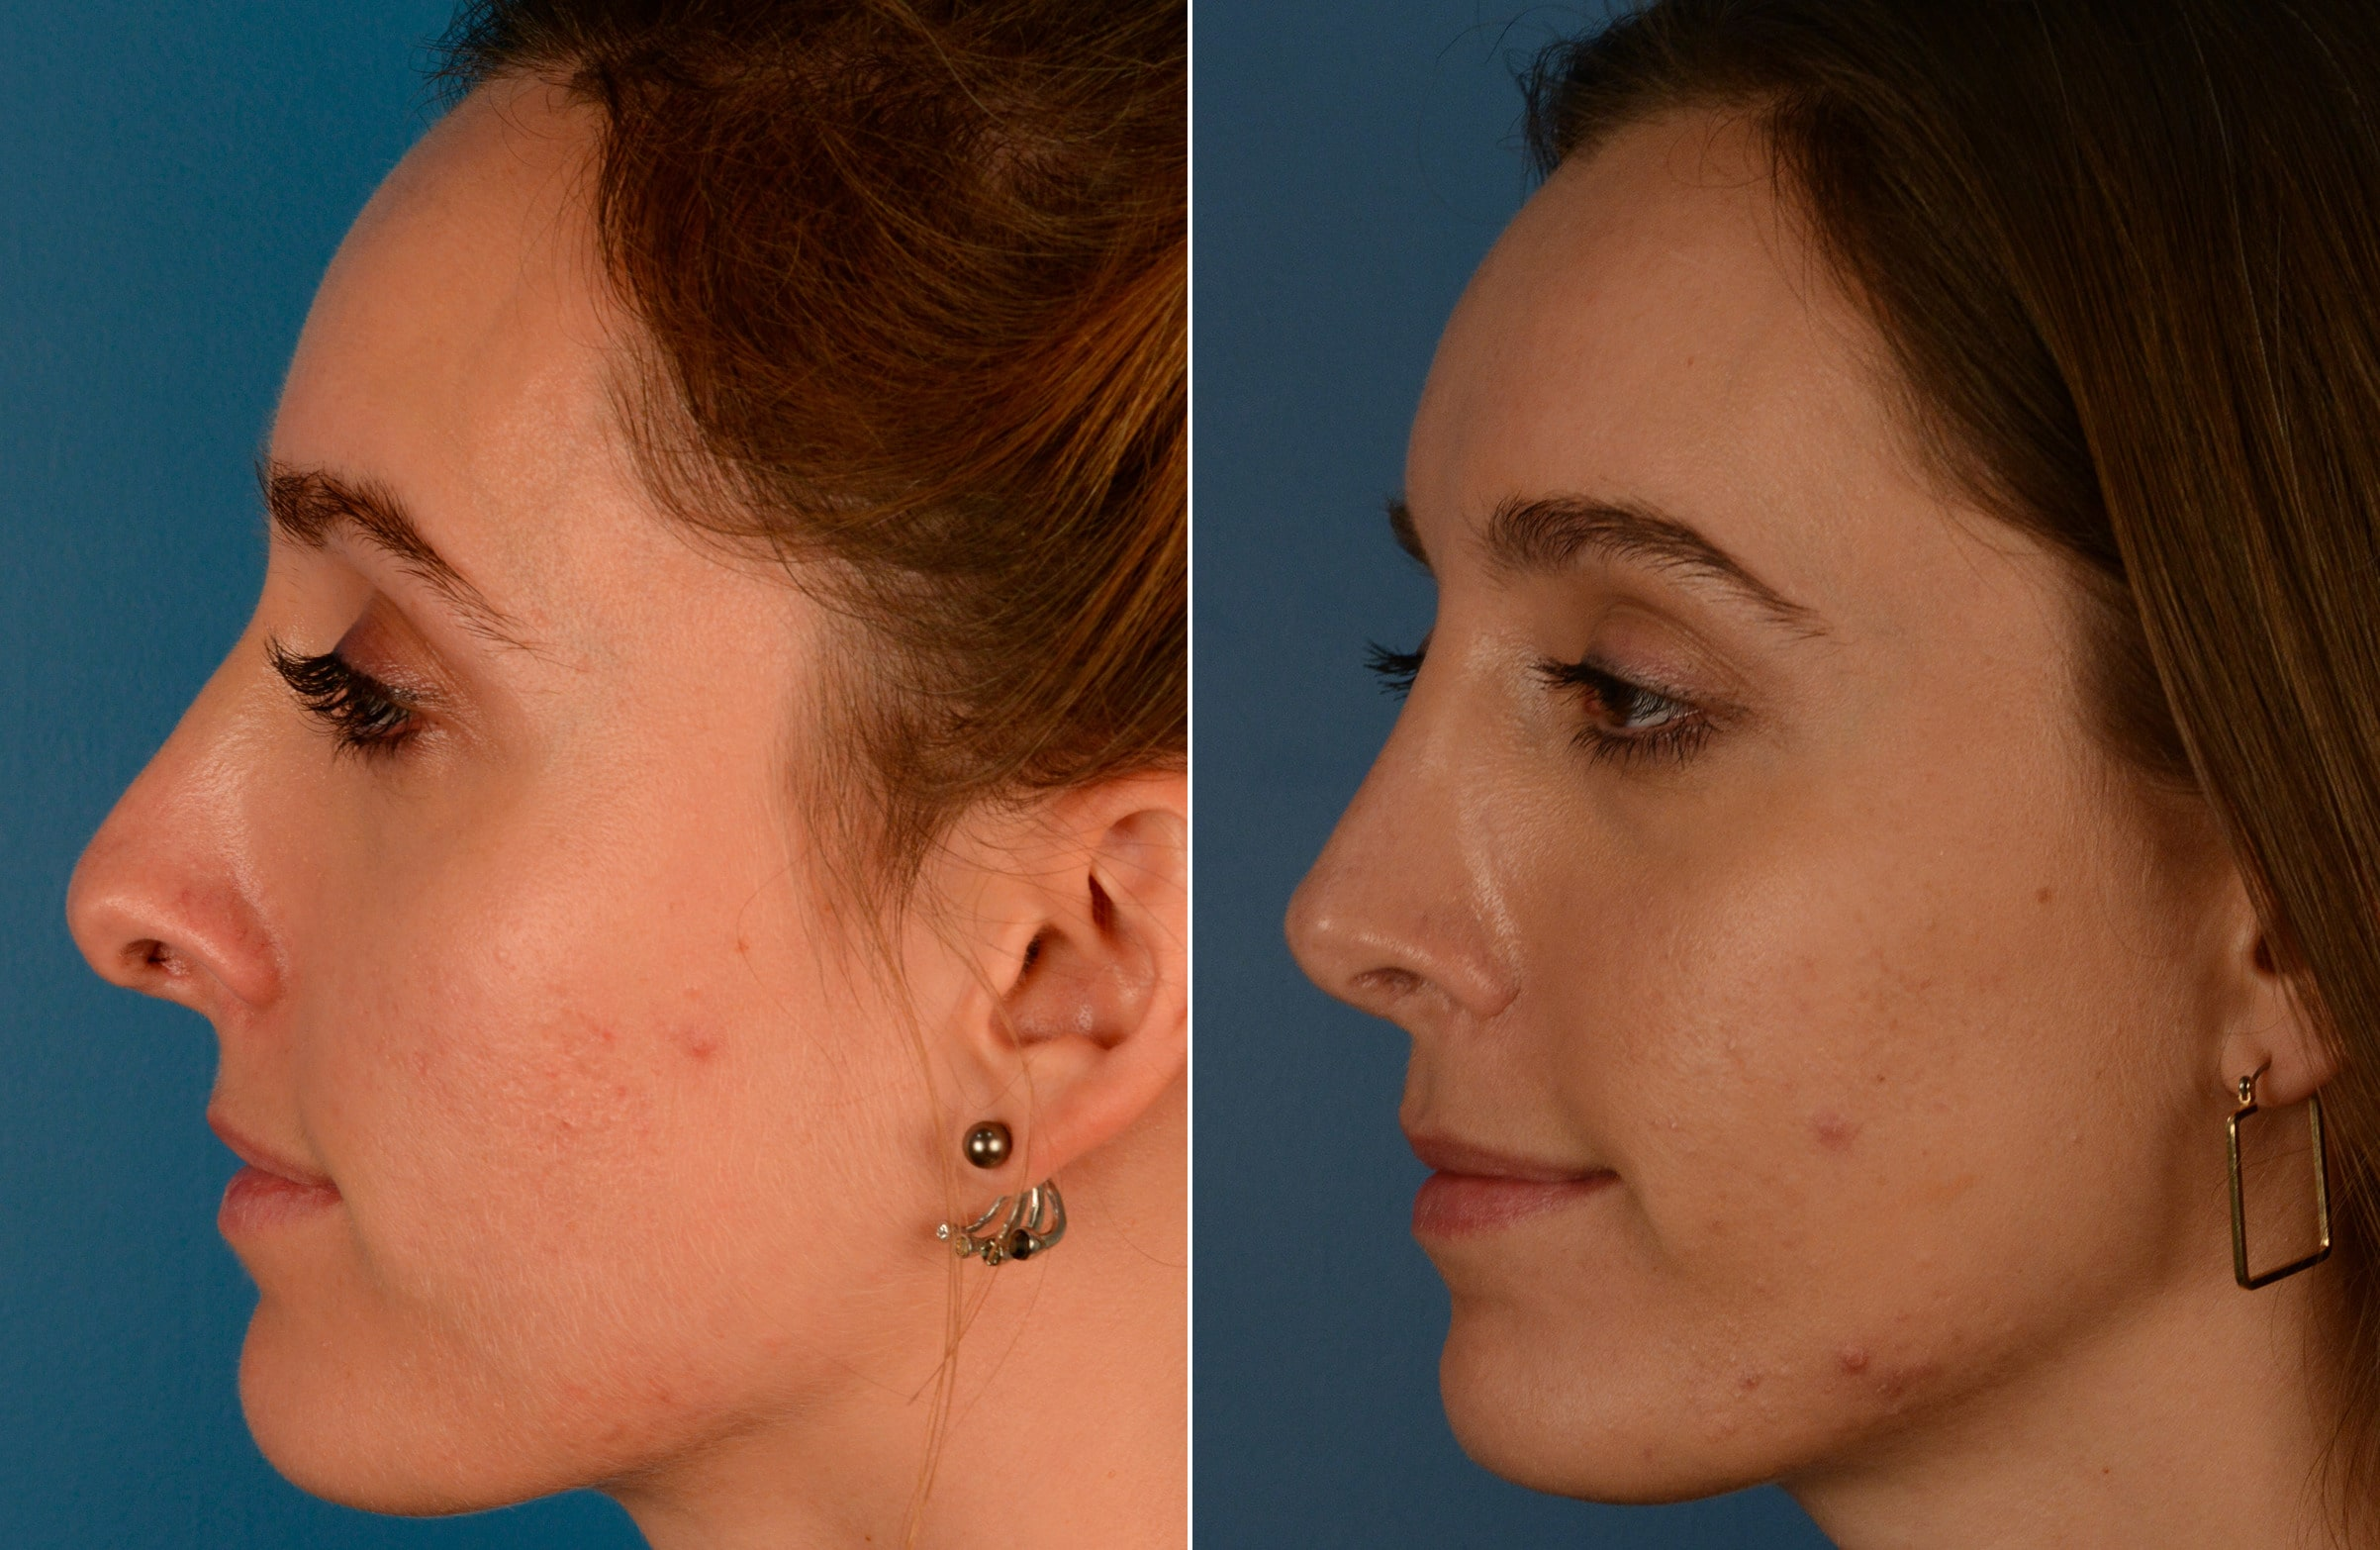 Why Should You Get A Revision Rhinoplasty?